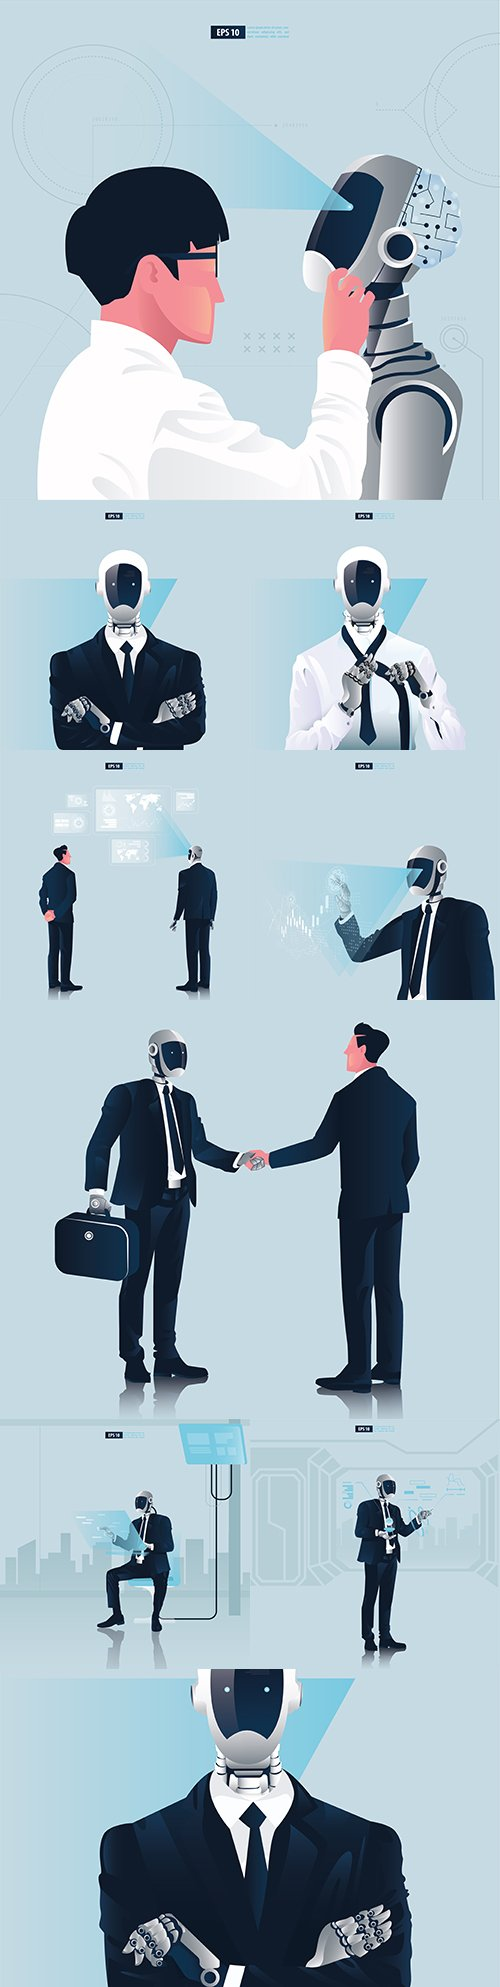 Businessman and robot concept of artificial intelligence technology